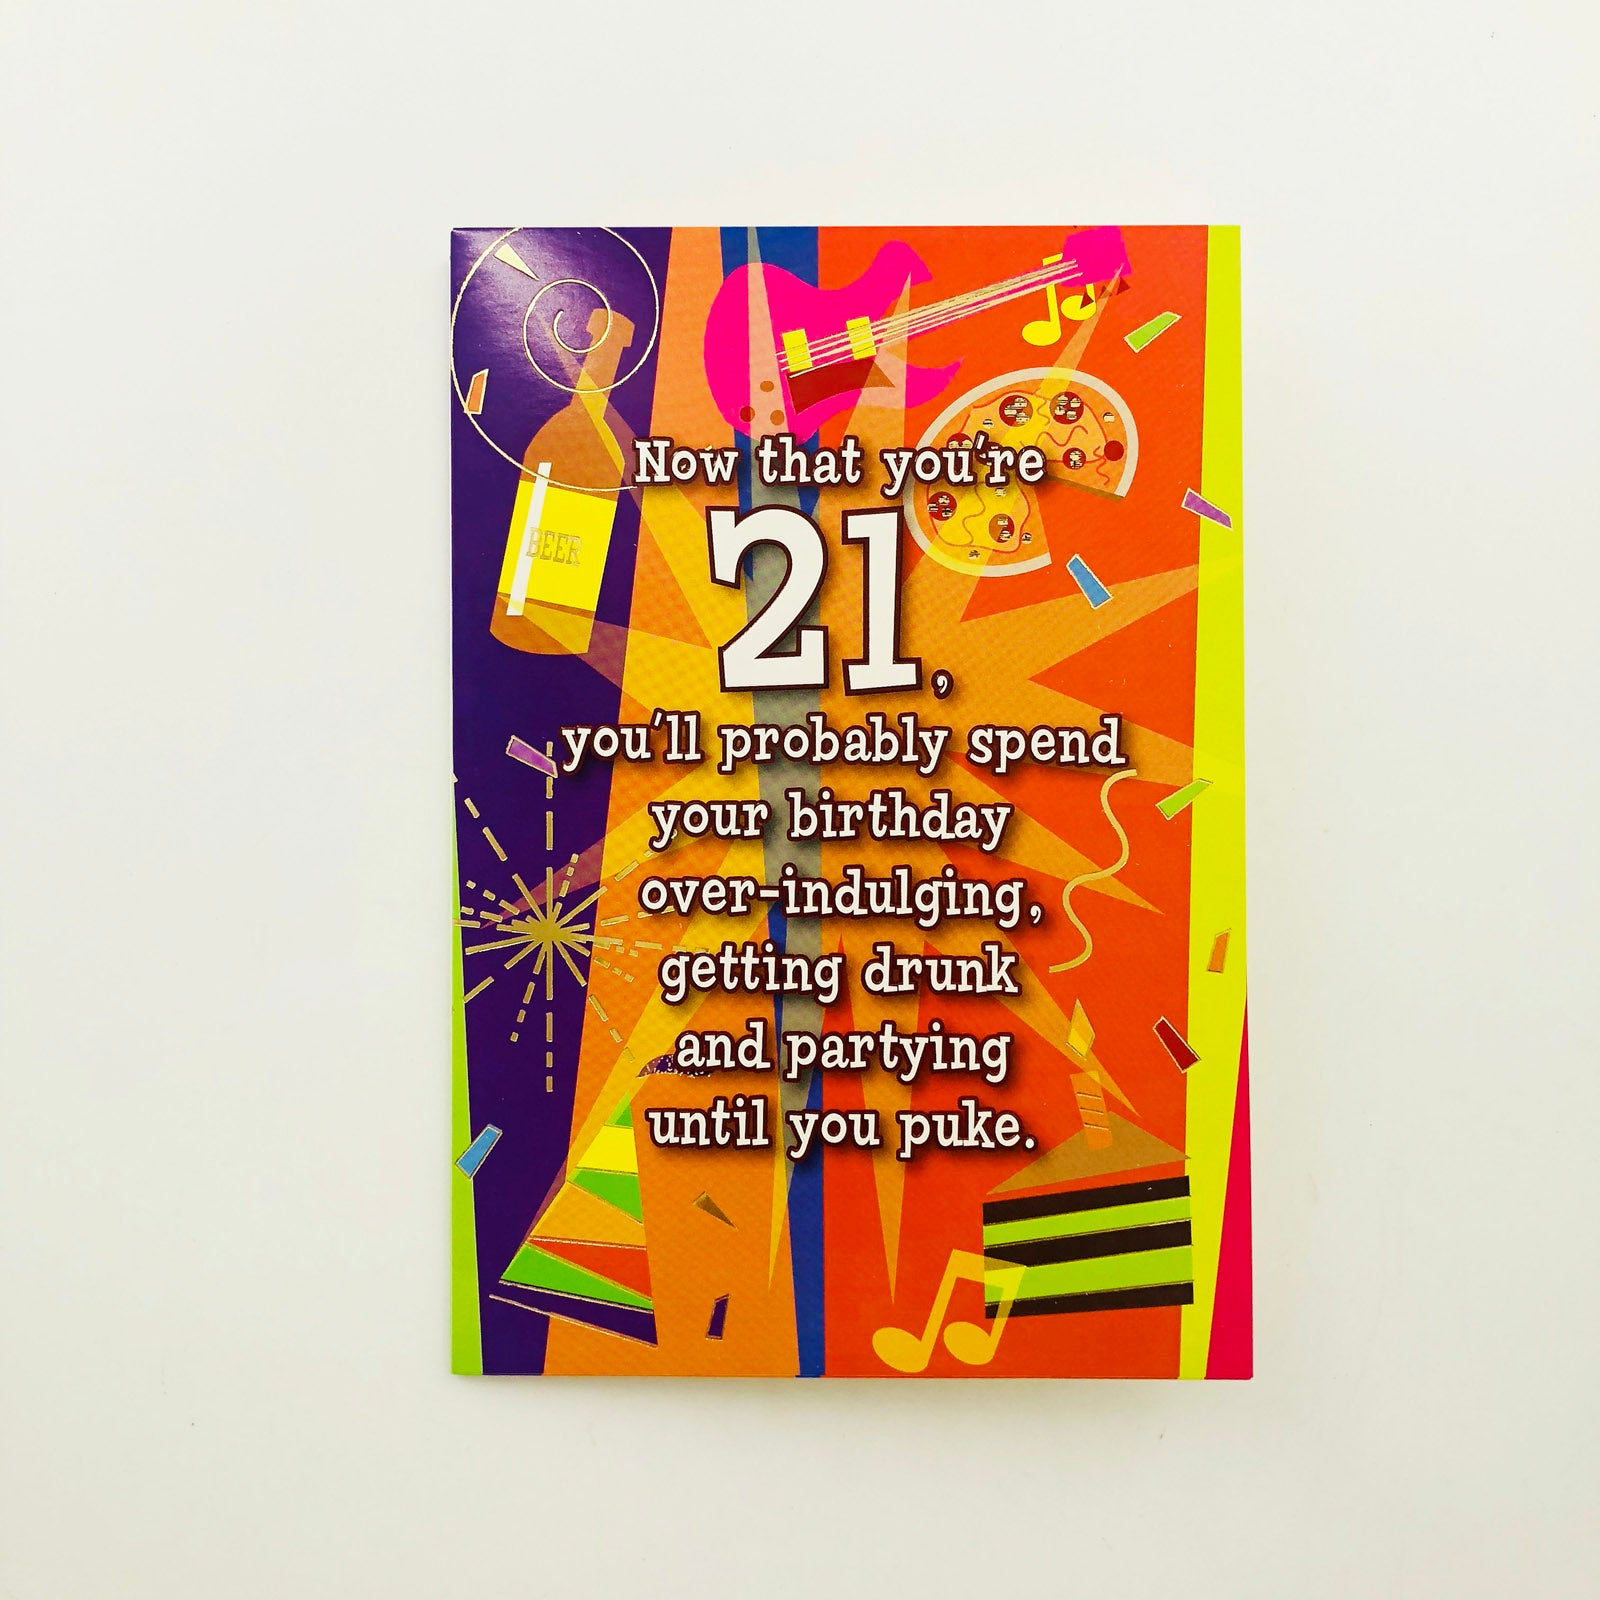 Designer Greetings Birthday Card Age 21 - Now That You're 21